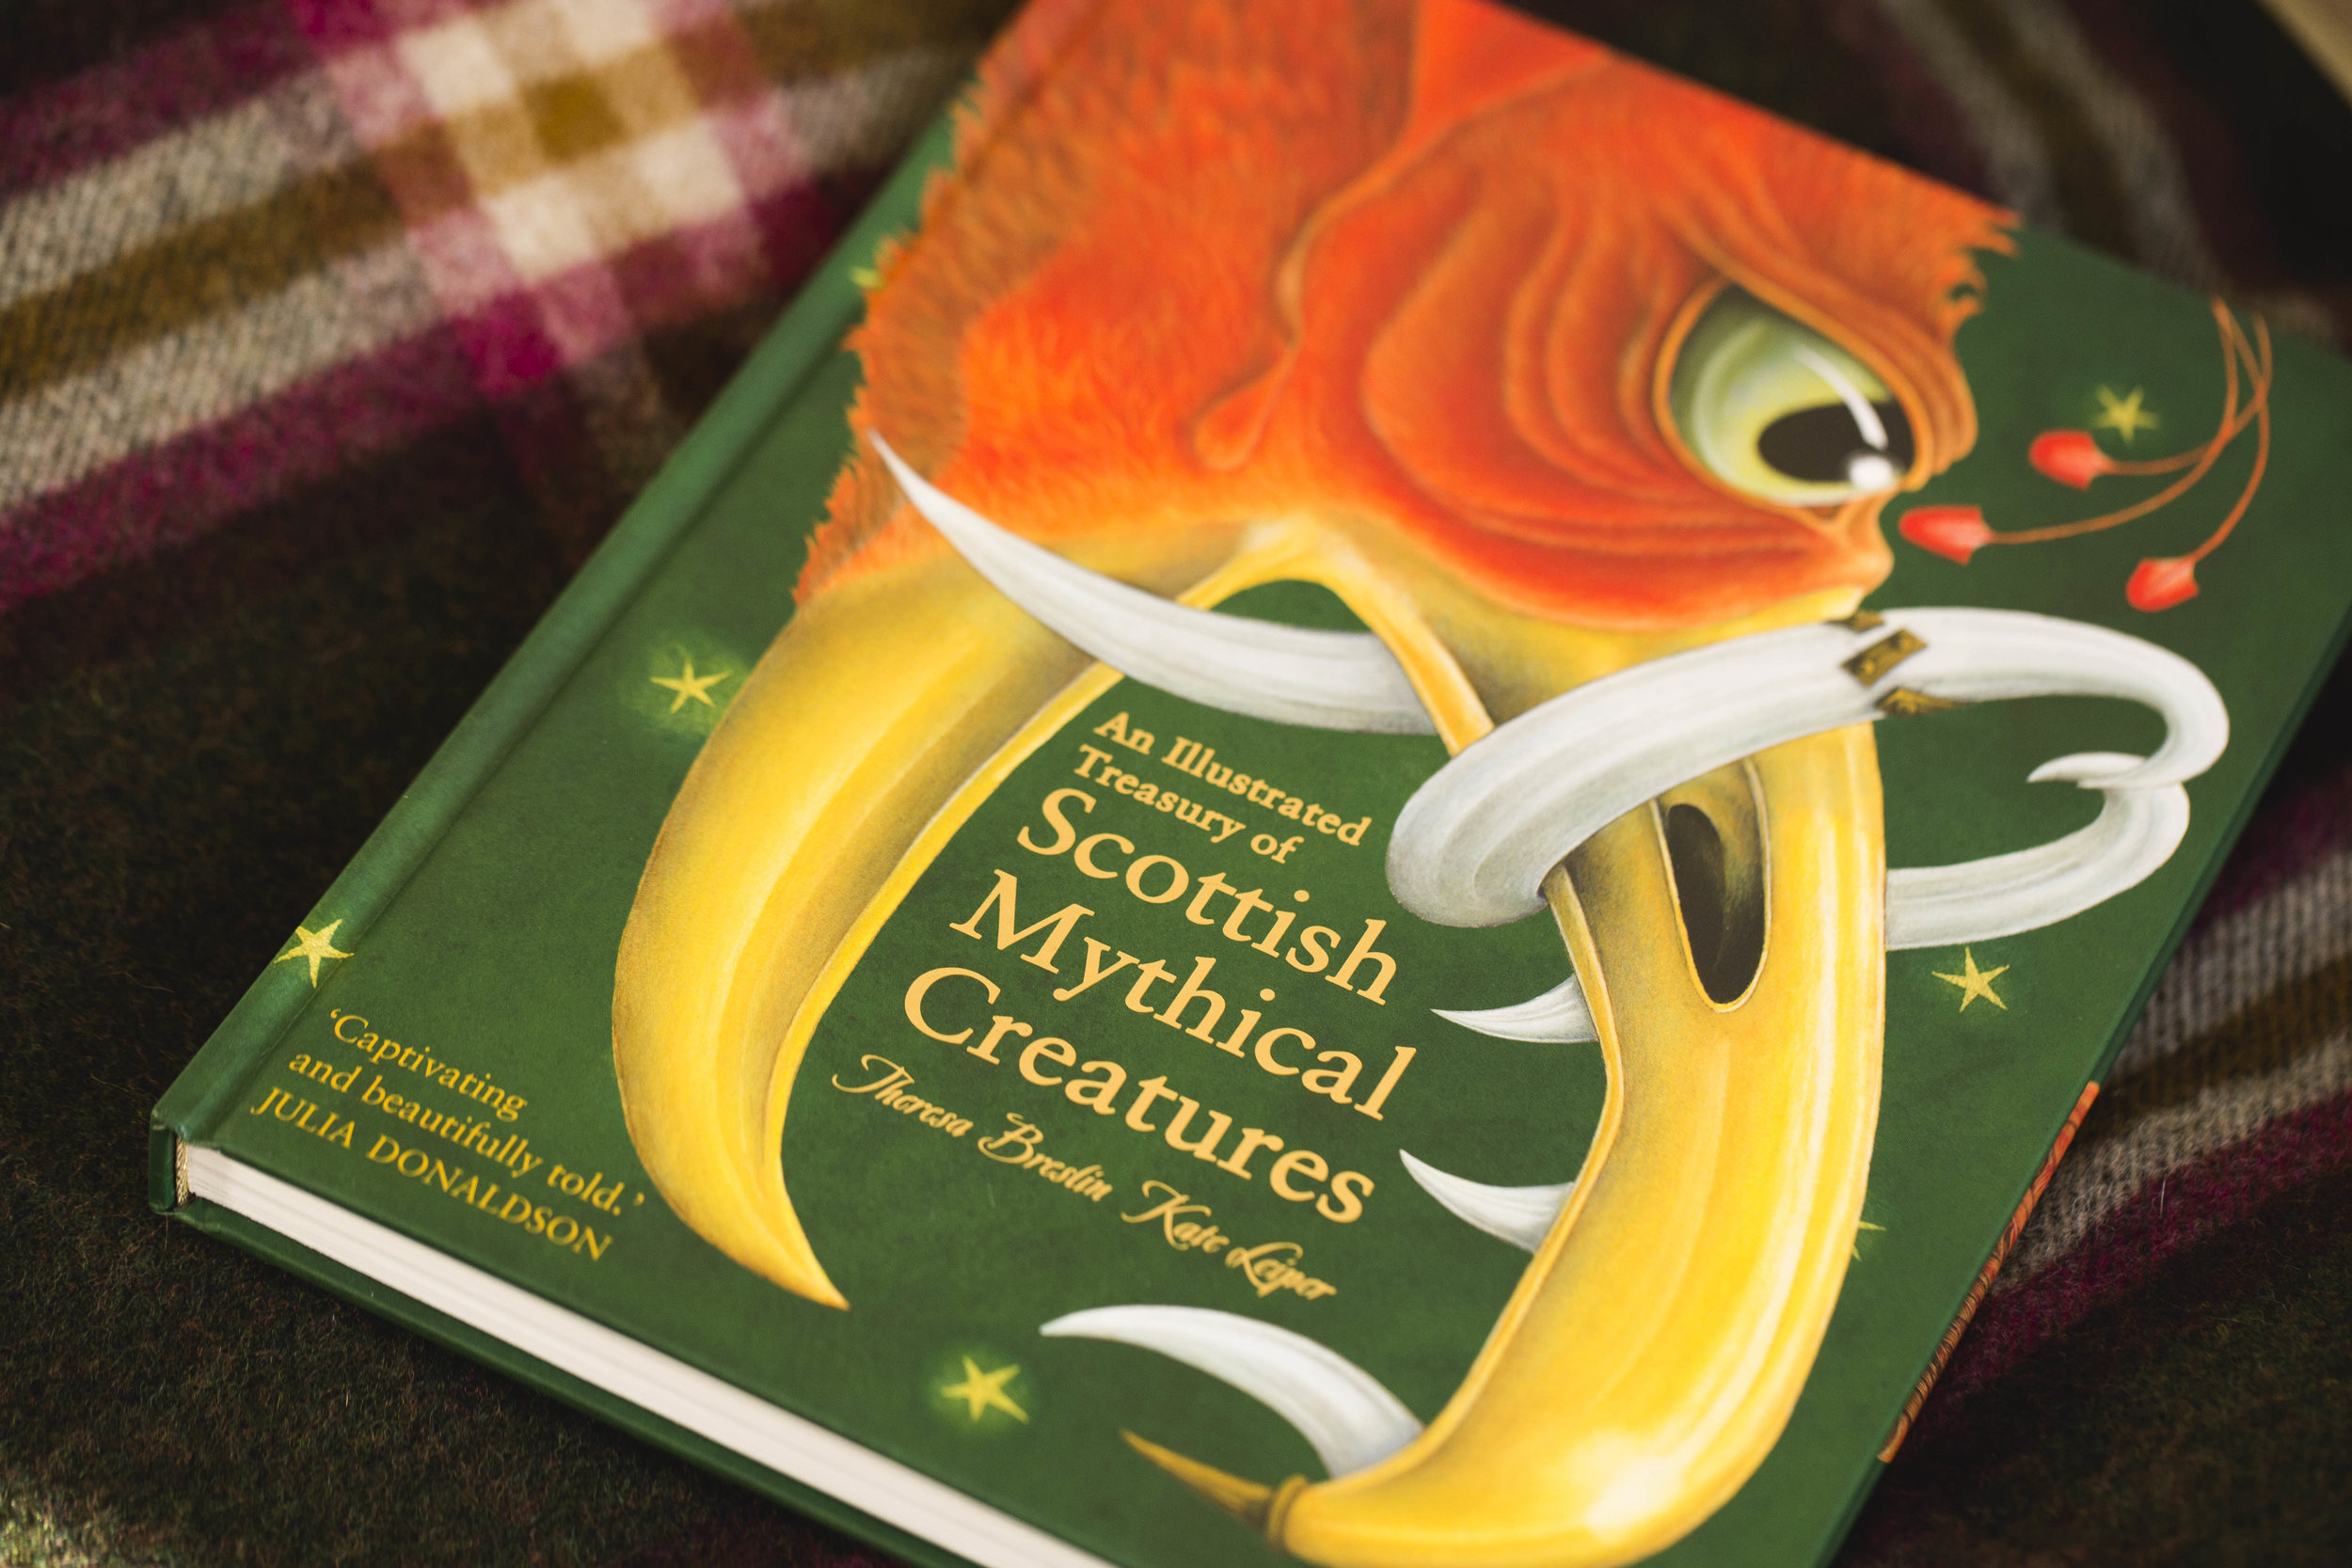 An Illustrated Treasure of Scottish Mythical Creatures